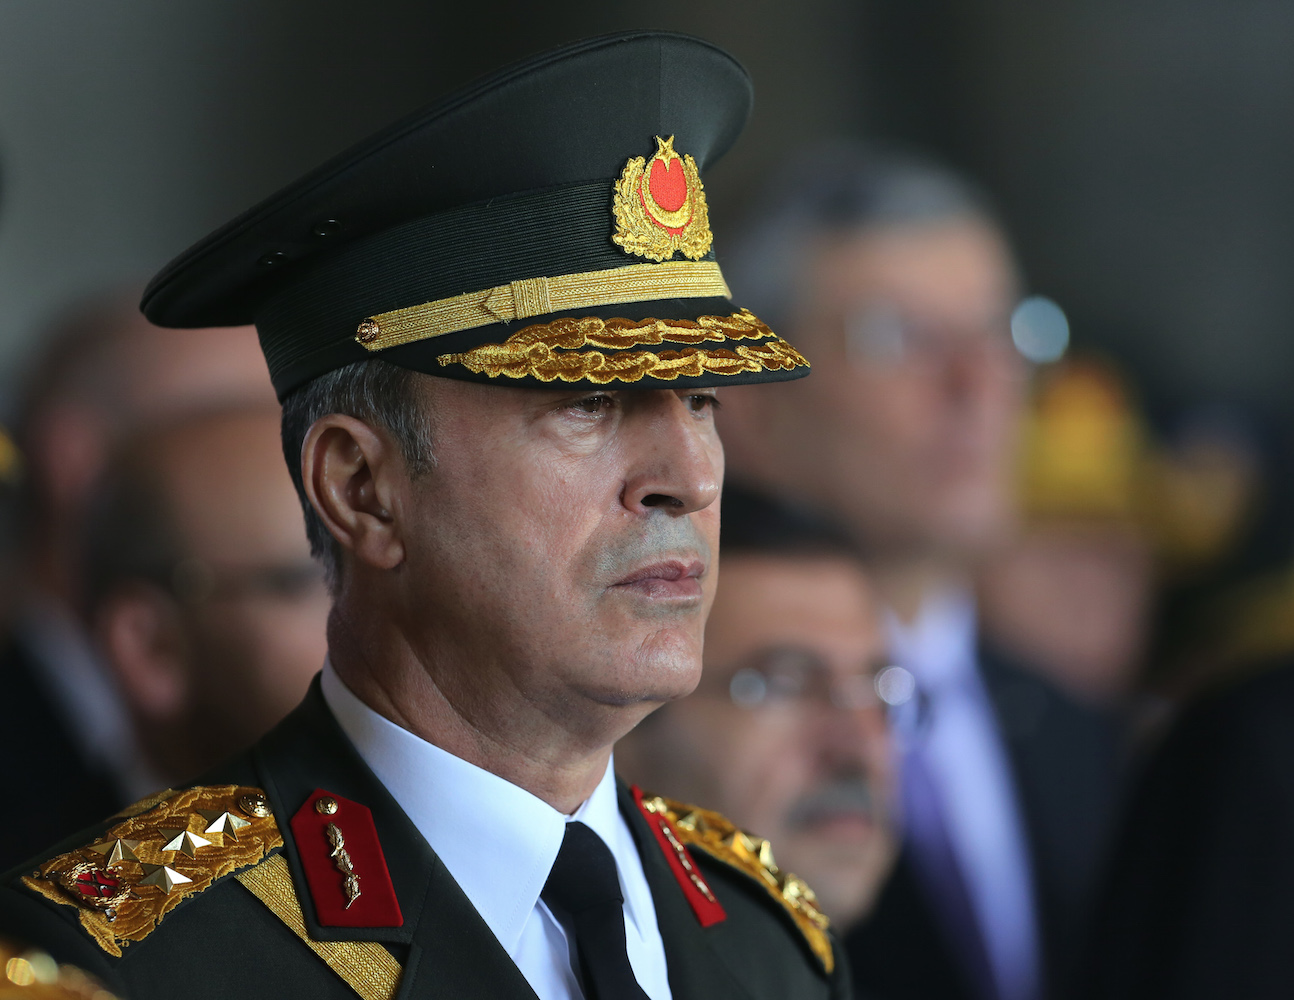 Turkish Chief of the General Staff arrives in Russia ...